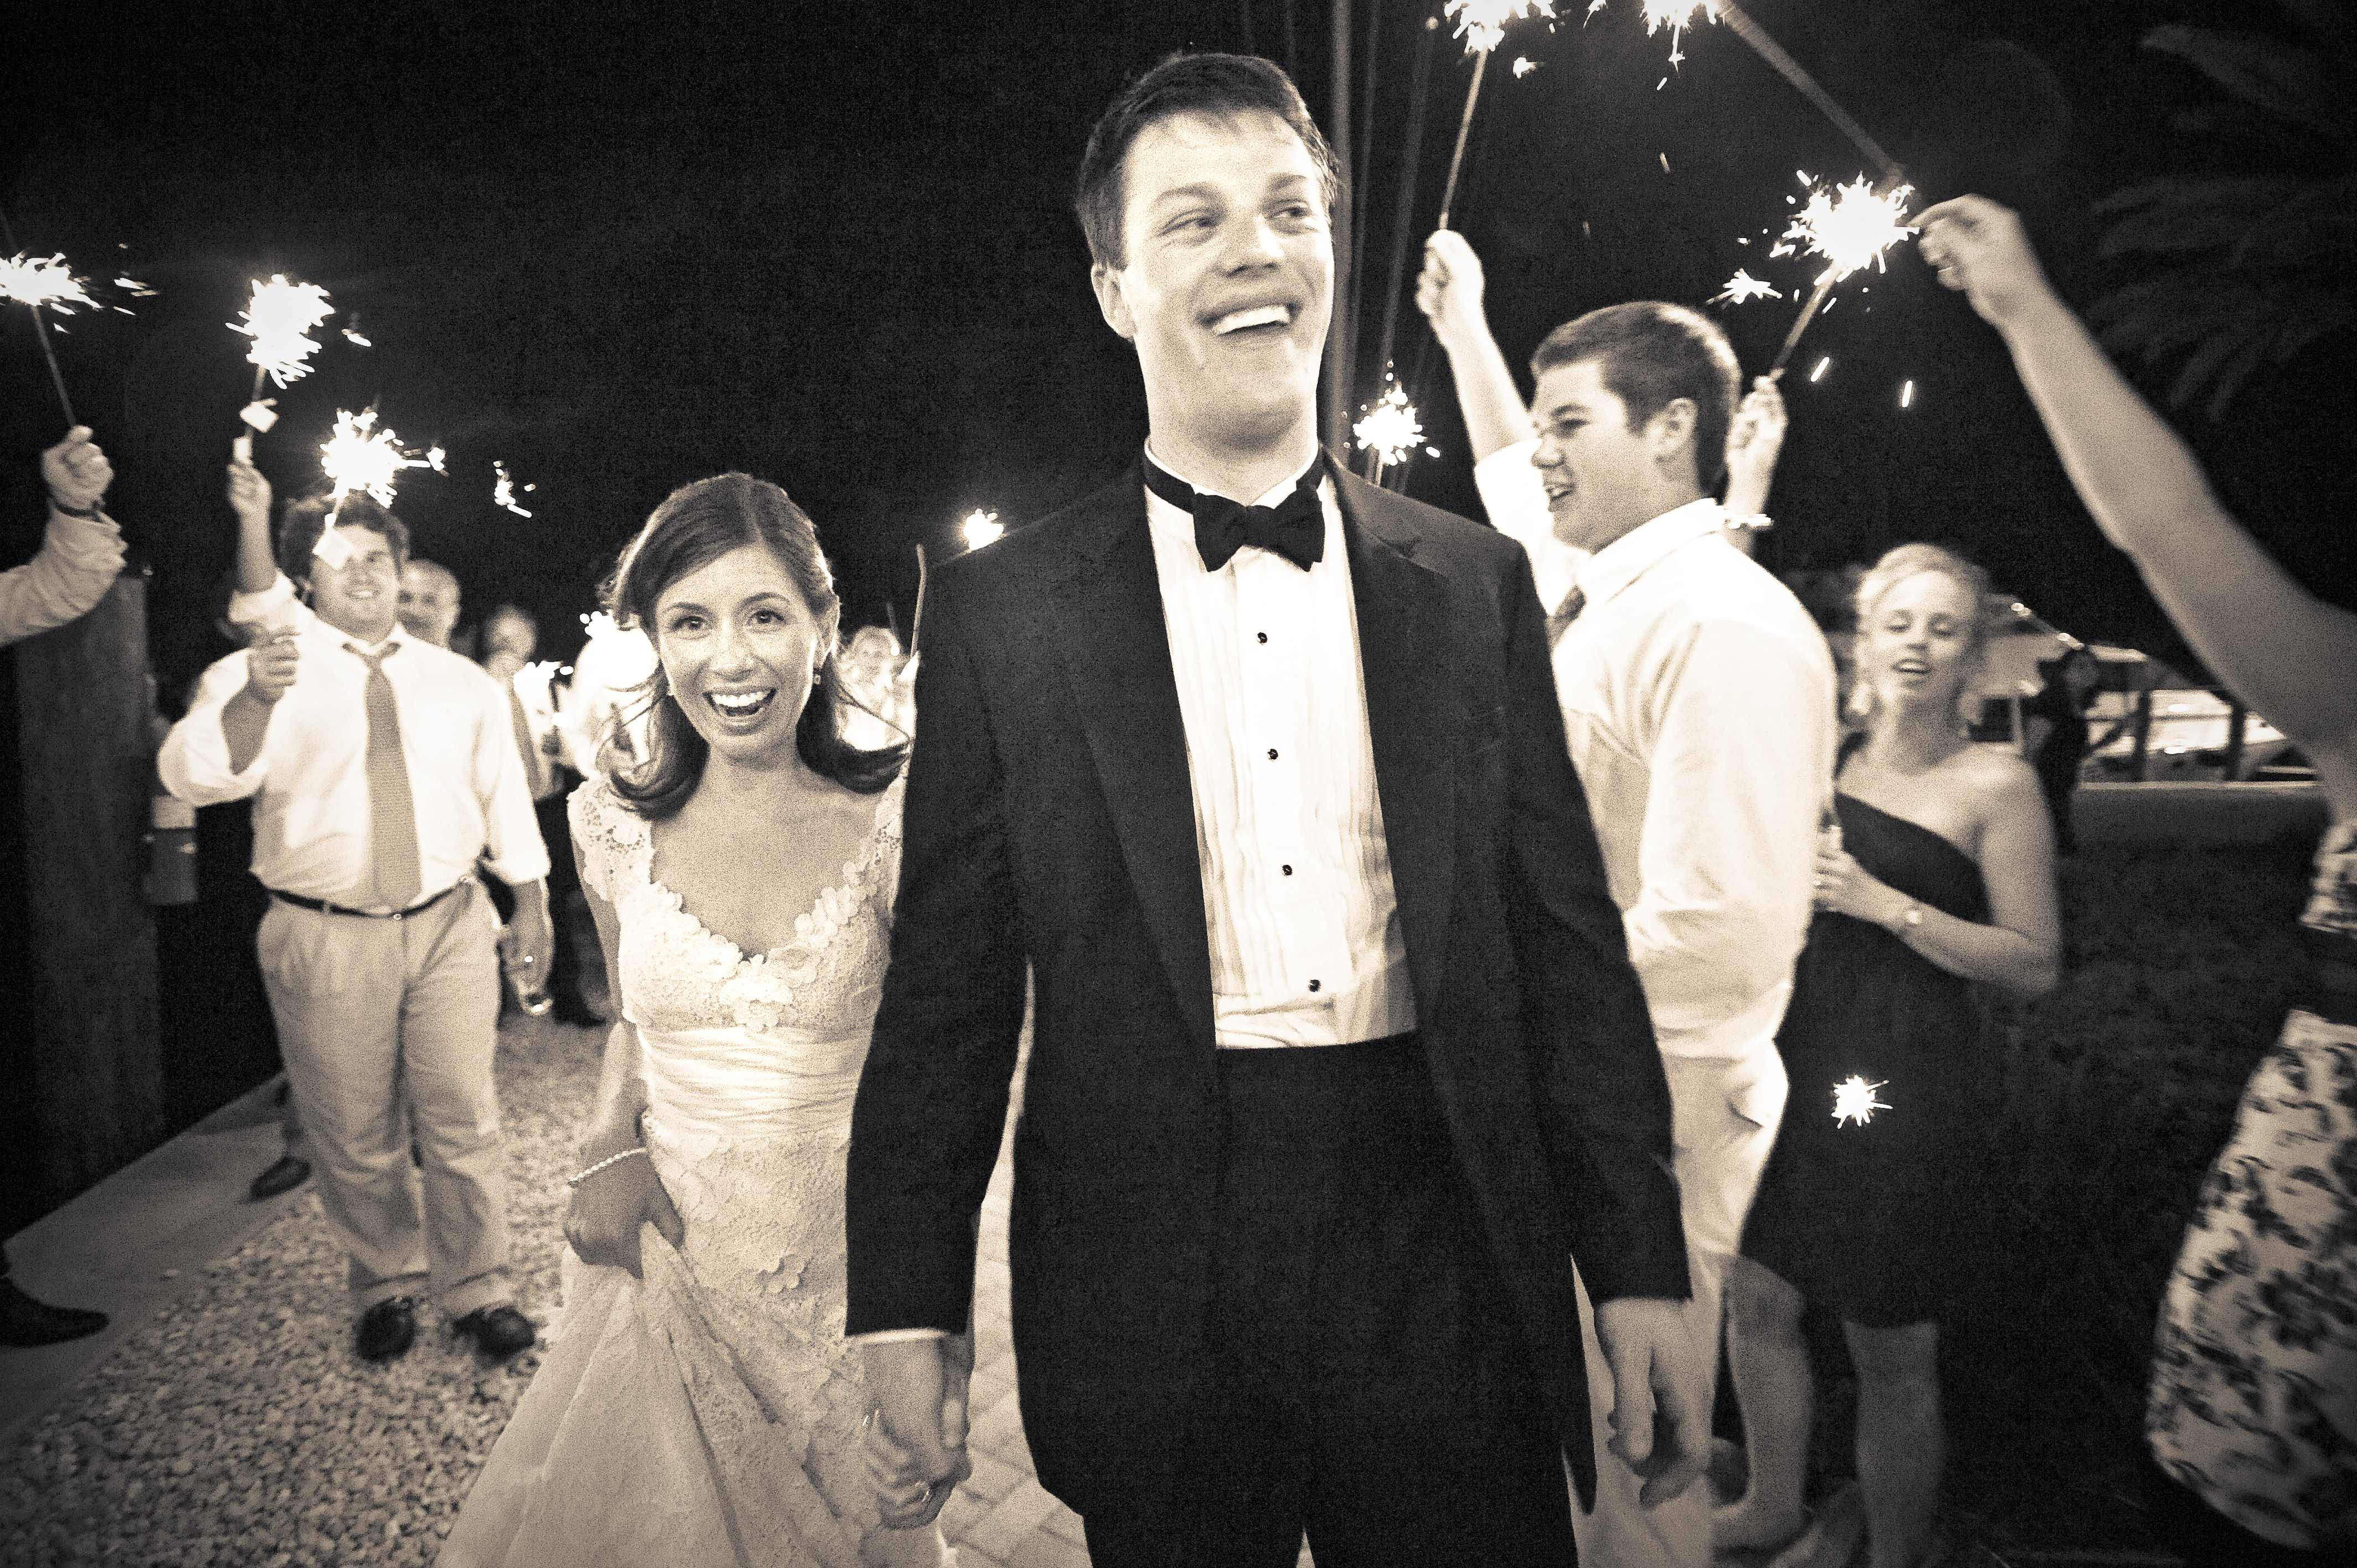 Black and white photo of bride and groom surprised happy sparkler exit